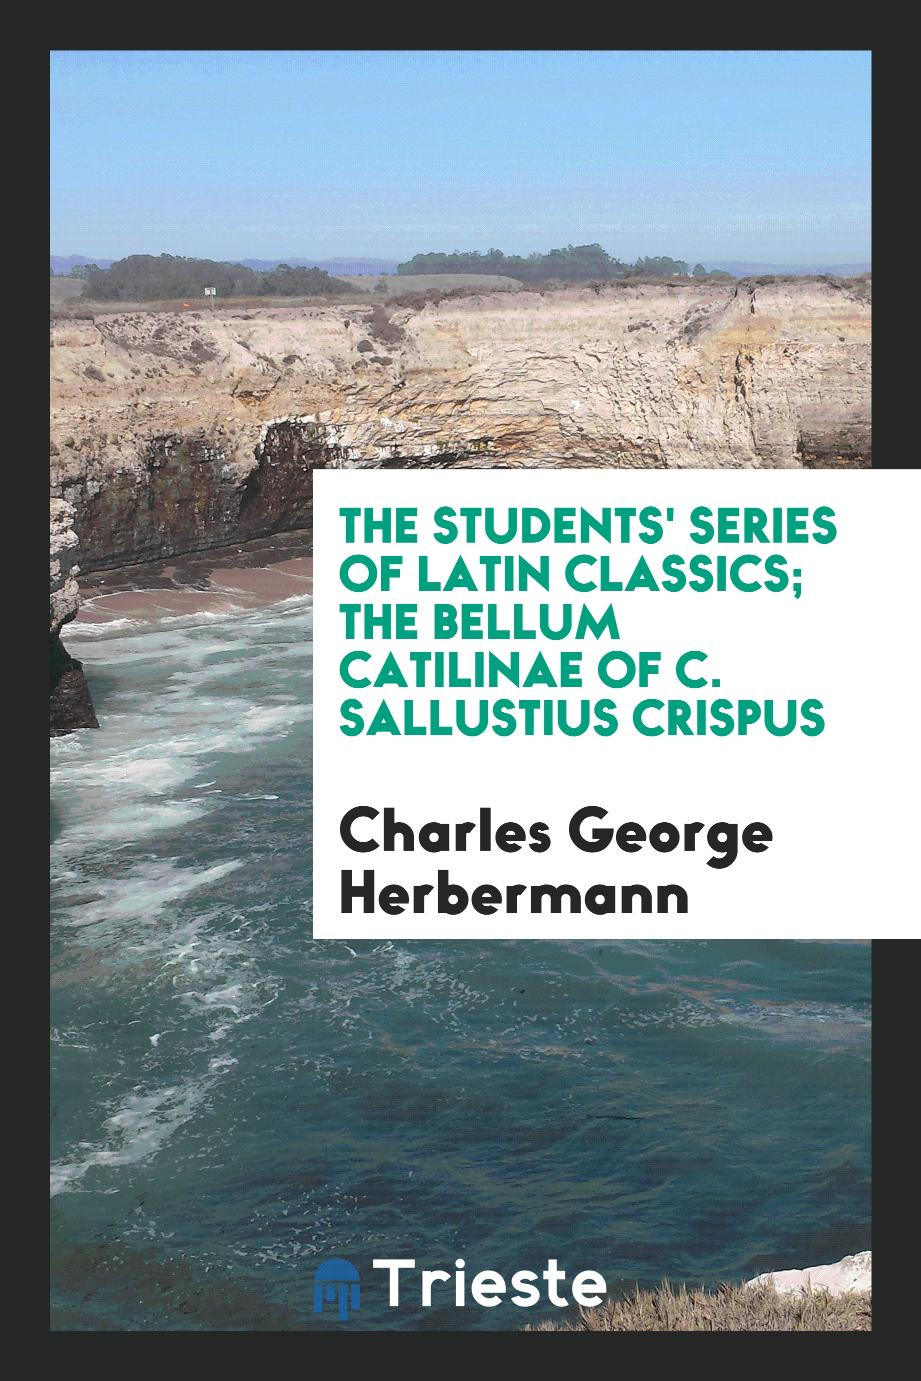 The Students' Series of Latin Classics; The Bellum Catilinae of C. Sallustius Crispus